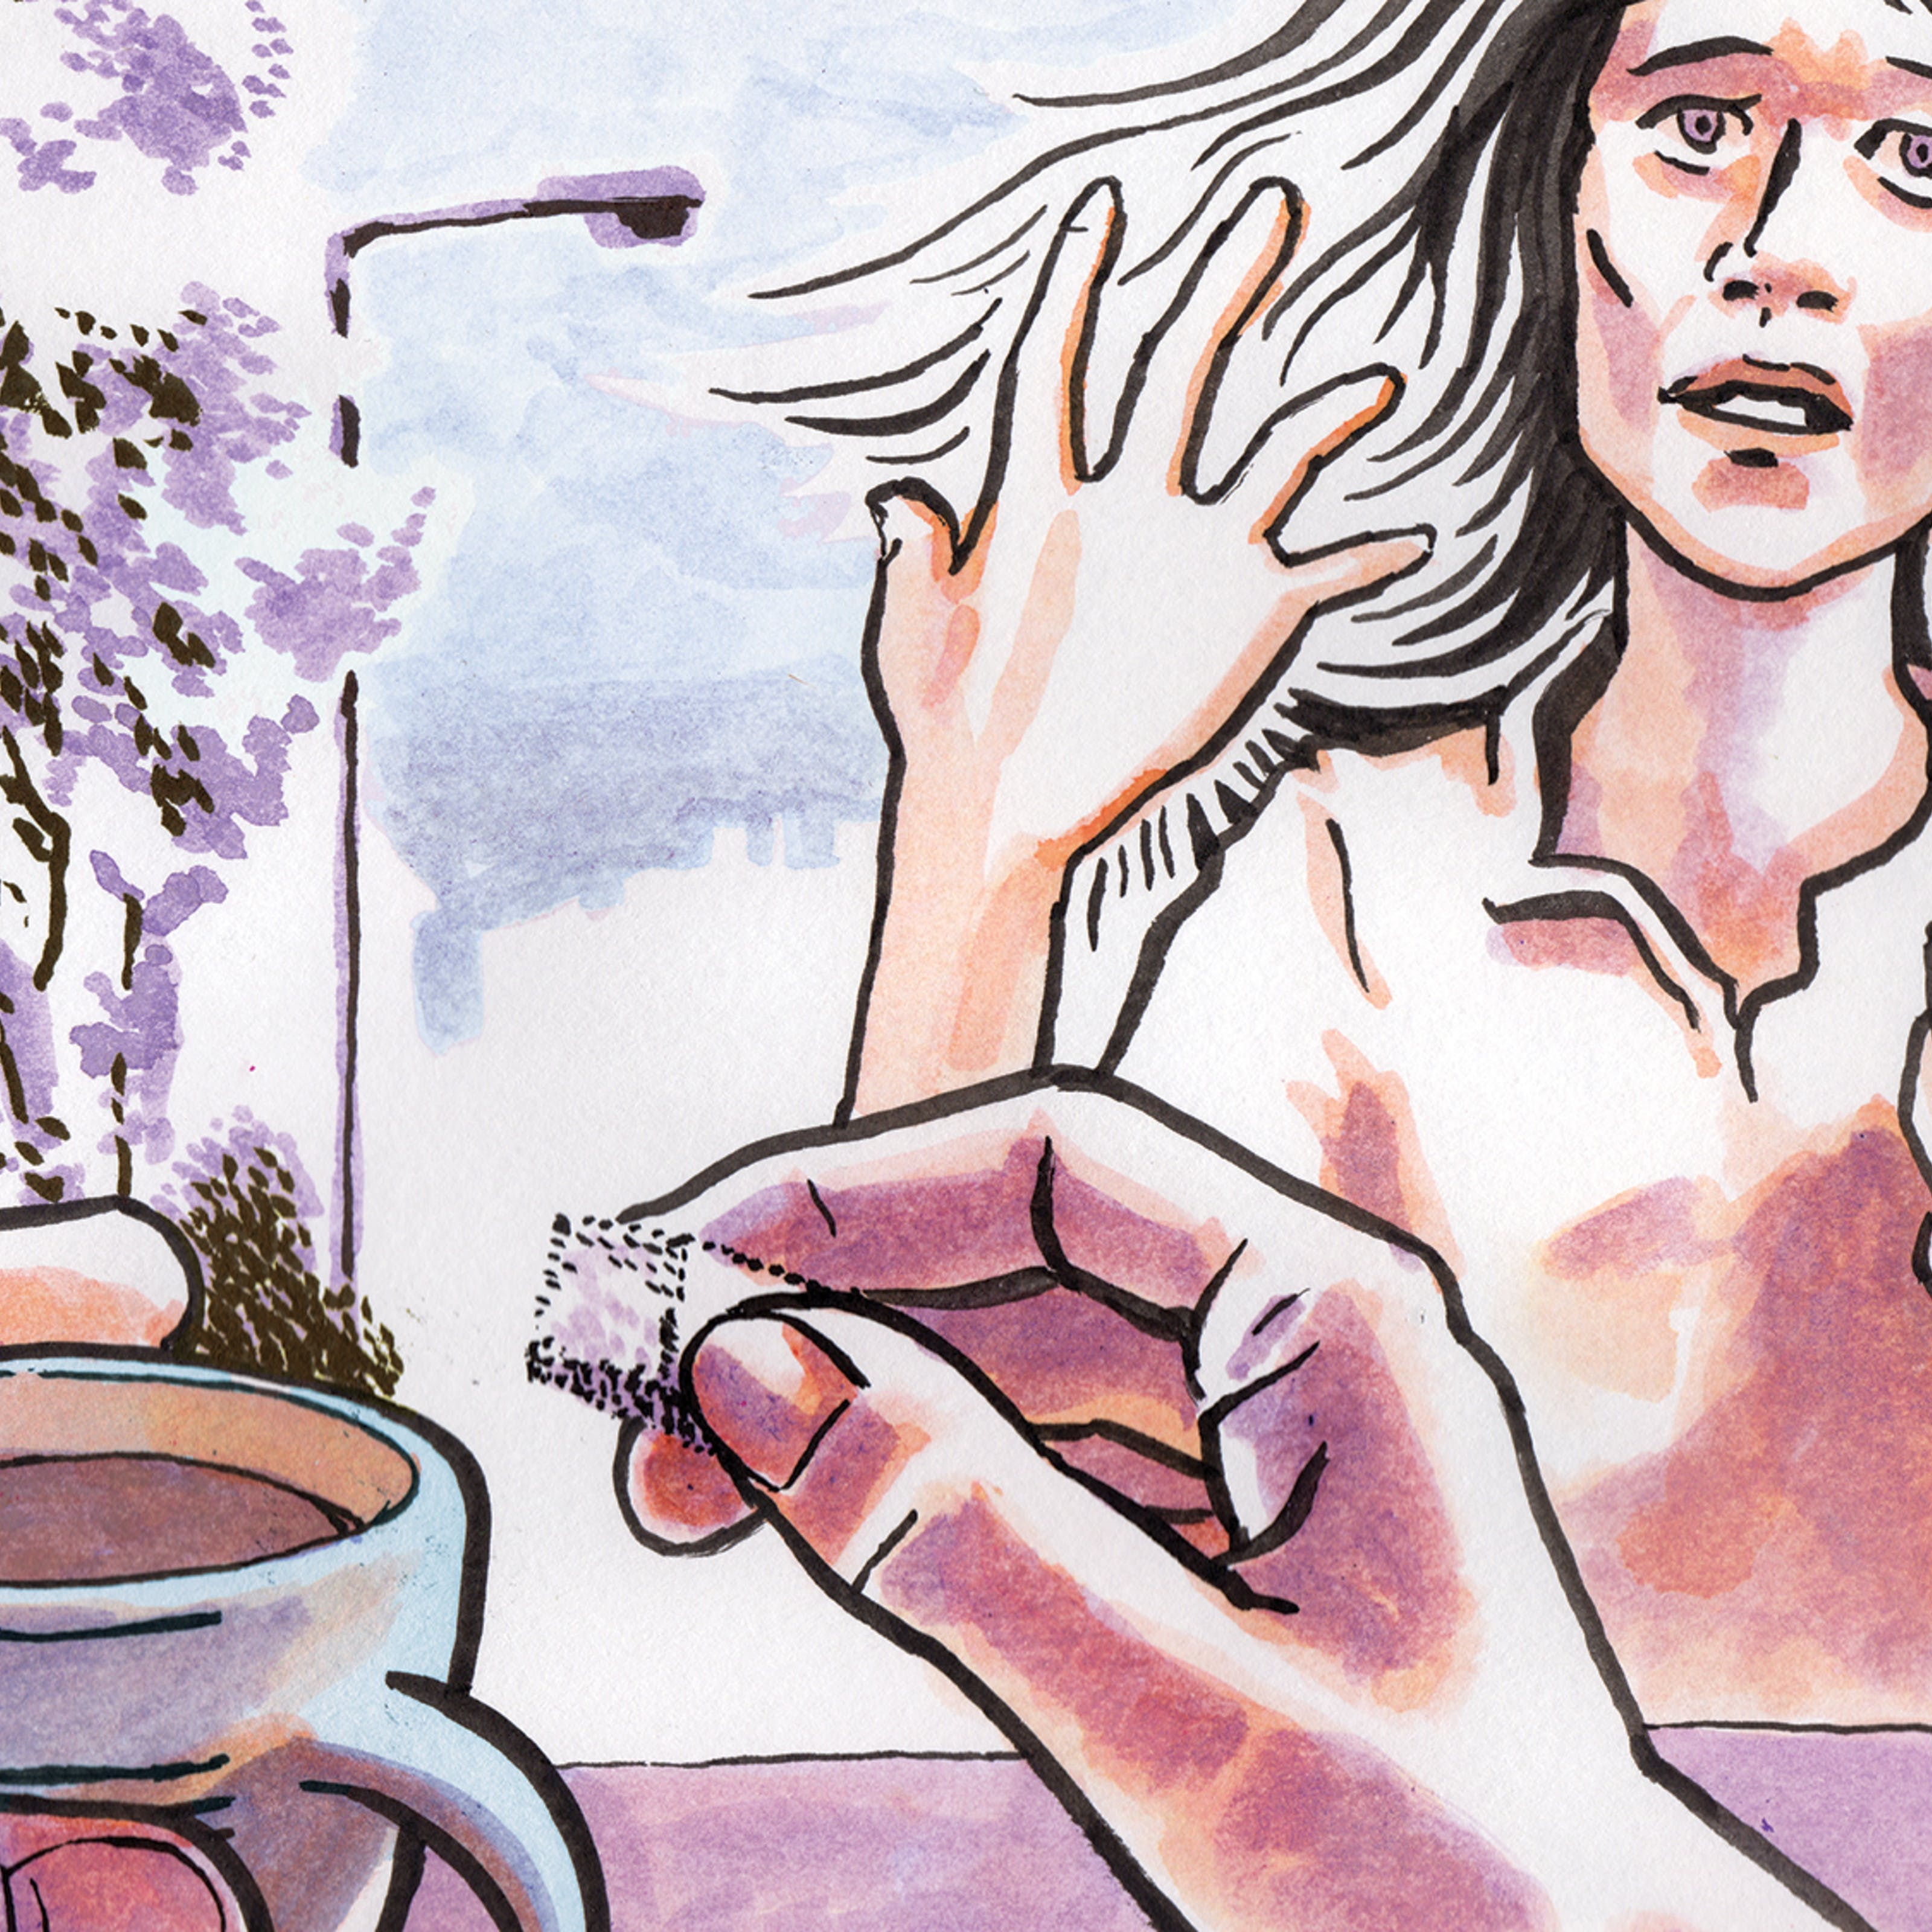 Ink cartoon drawing of a pair of hands with coffee foregrounding a woman looking pained holding a cup of coffee. Trees and a lamp-post in the background.